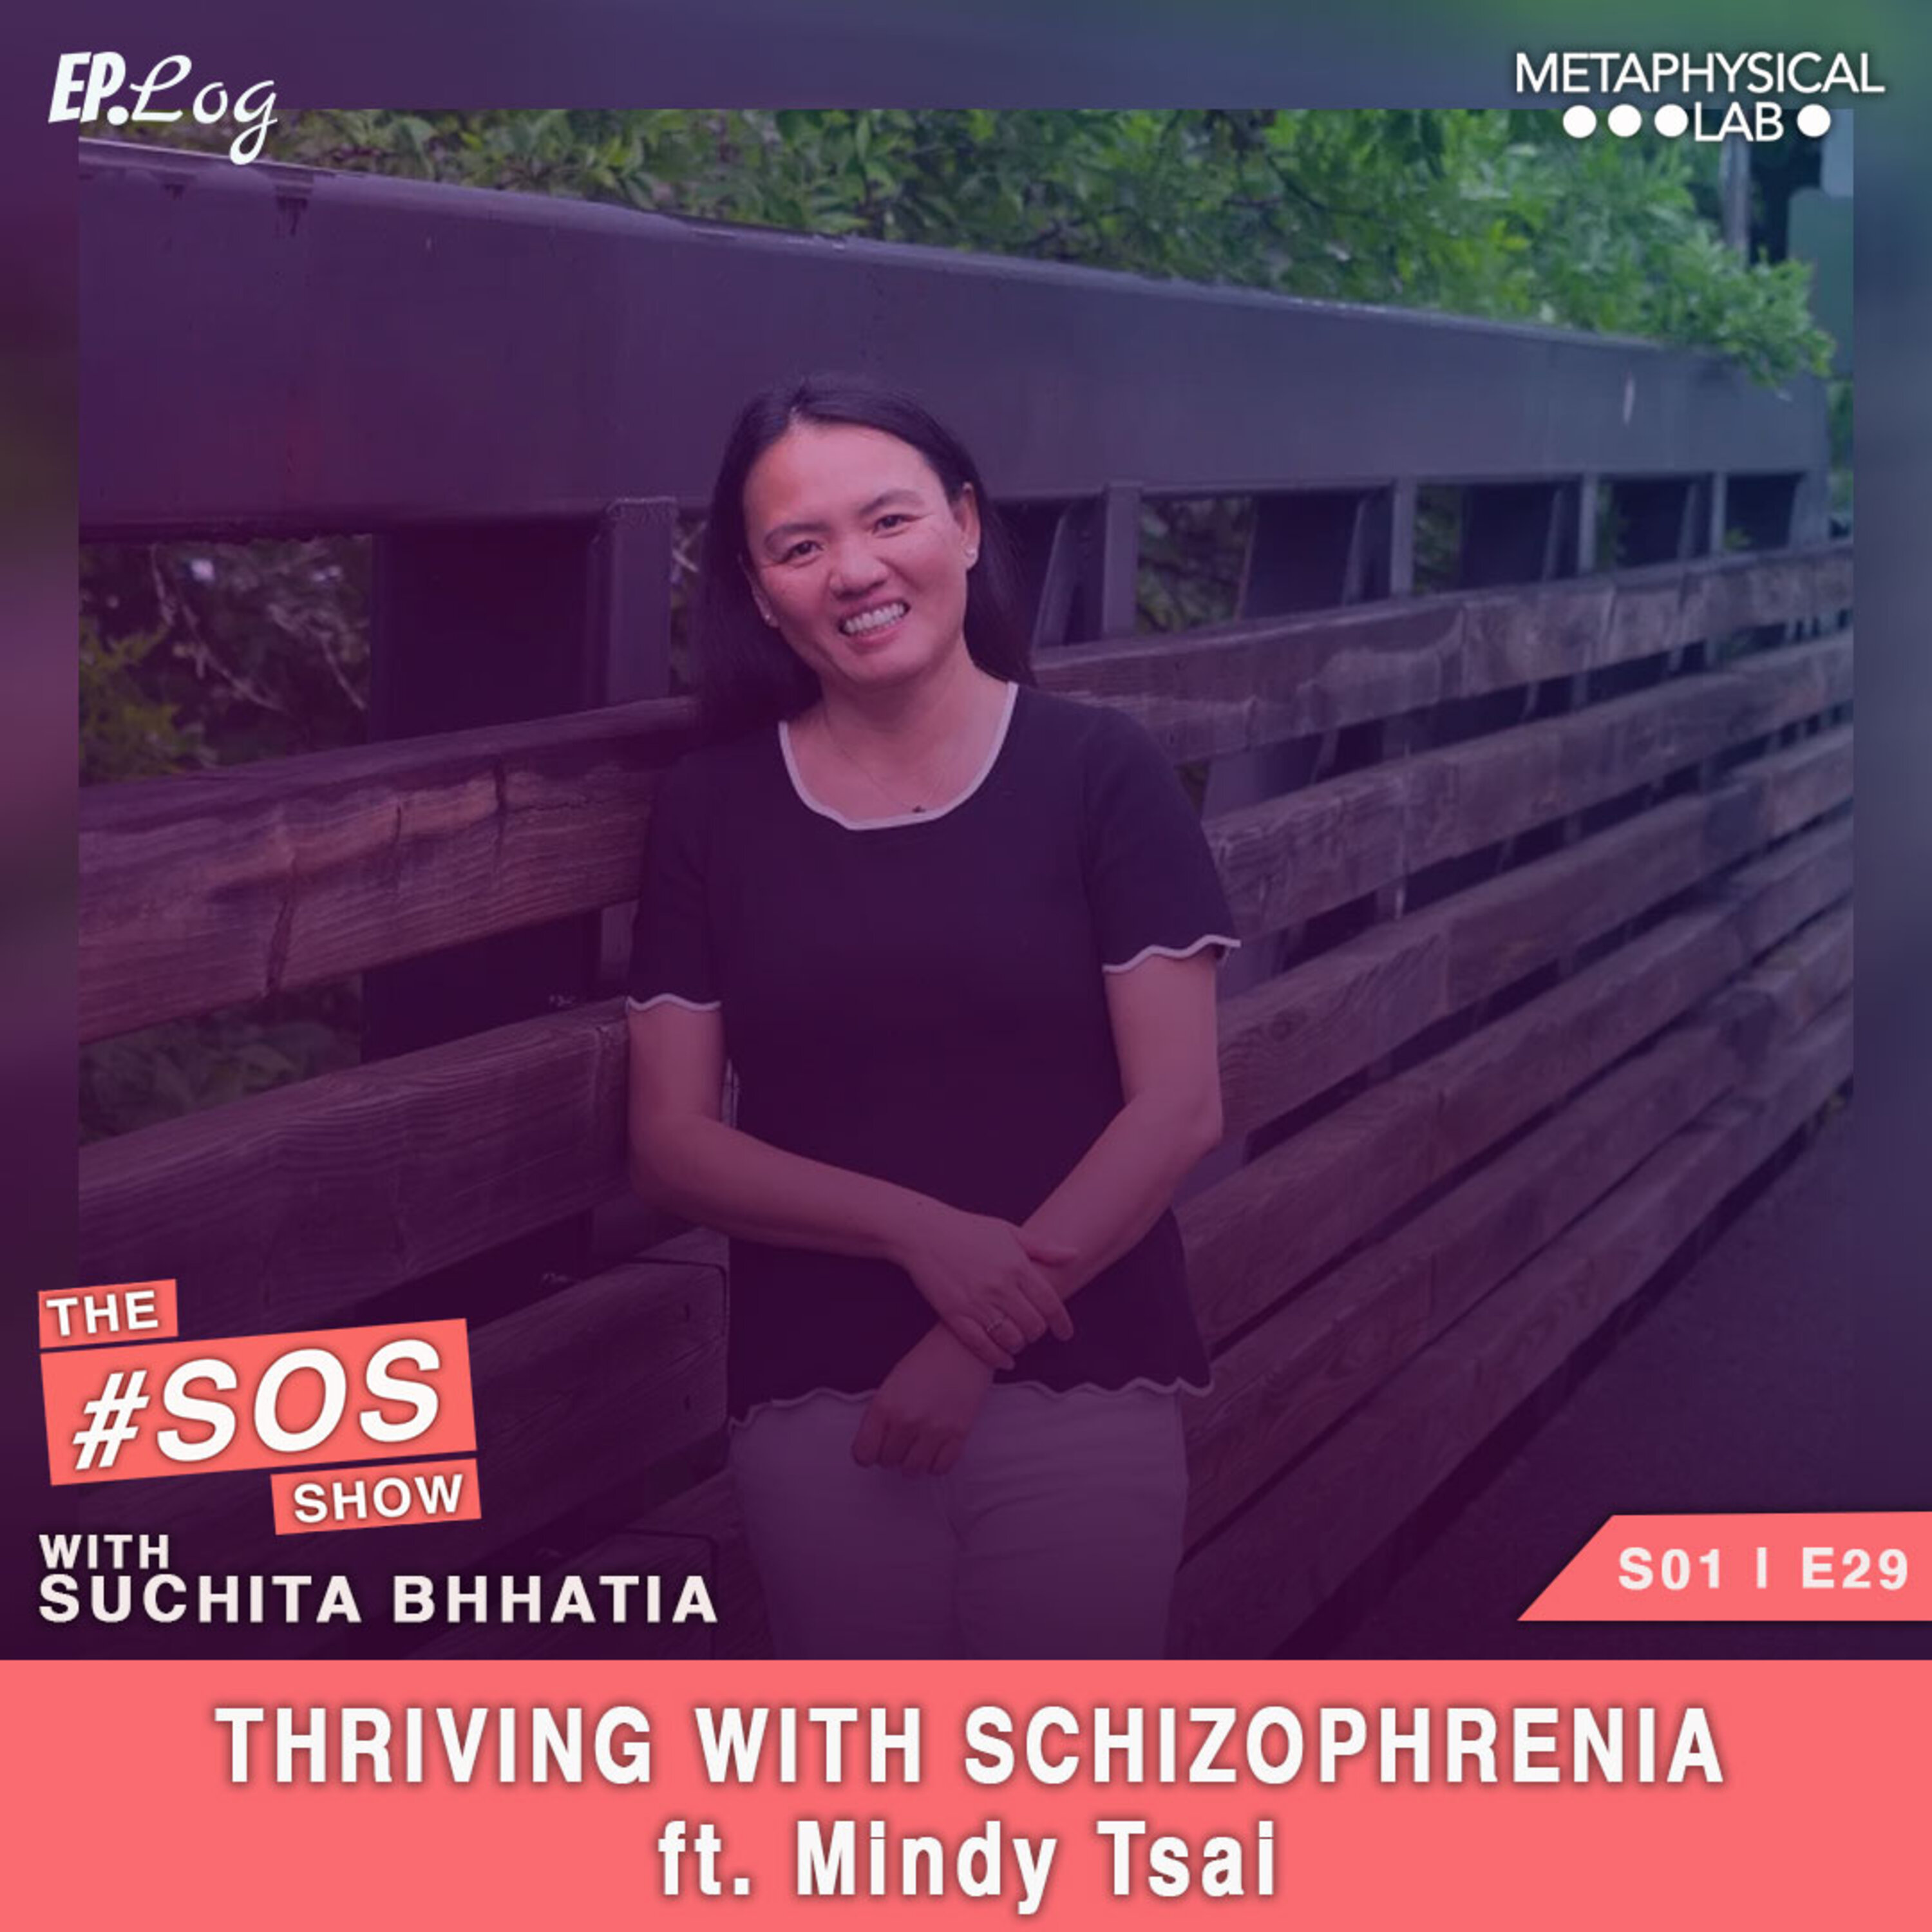 Ep.29 Thriving with Schizophrenia ft. Mindy Tsai-Digital Health Evangelist and Author